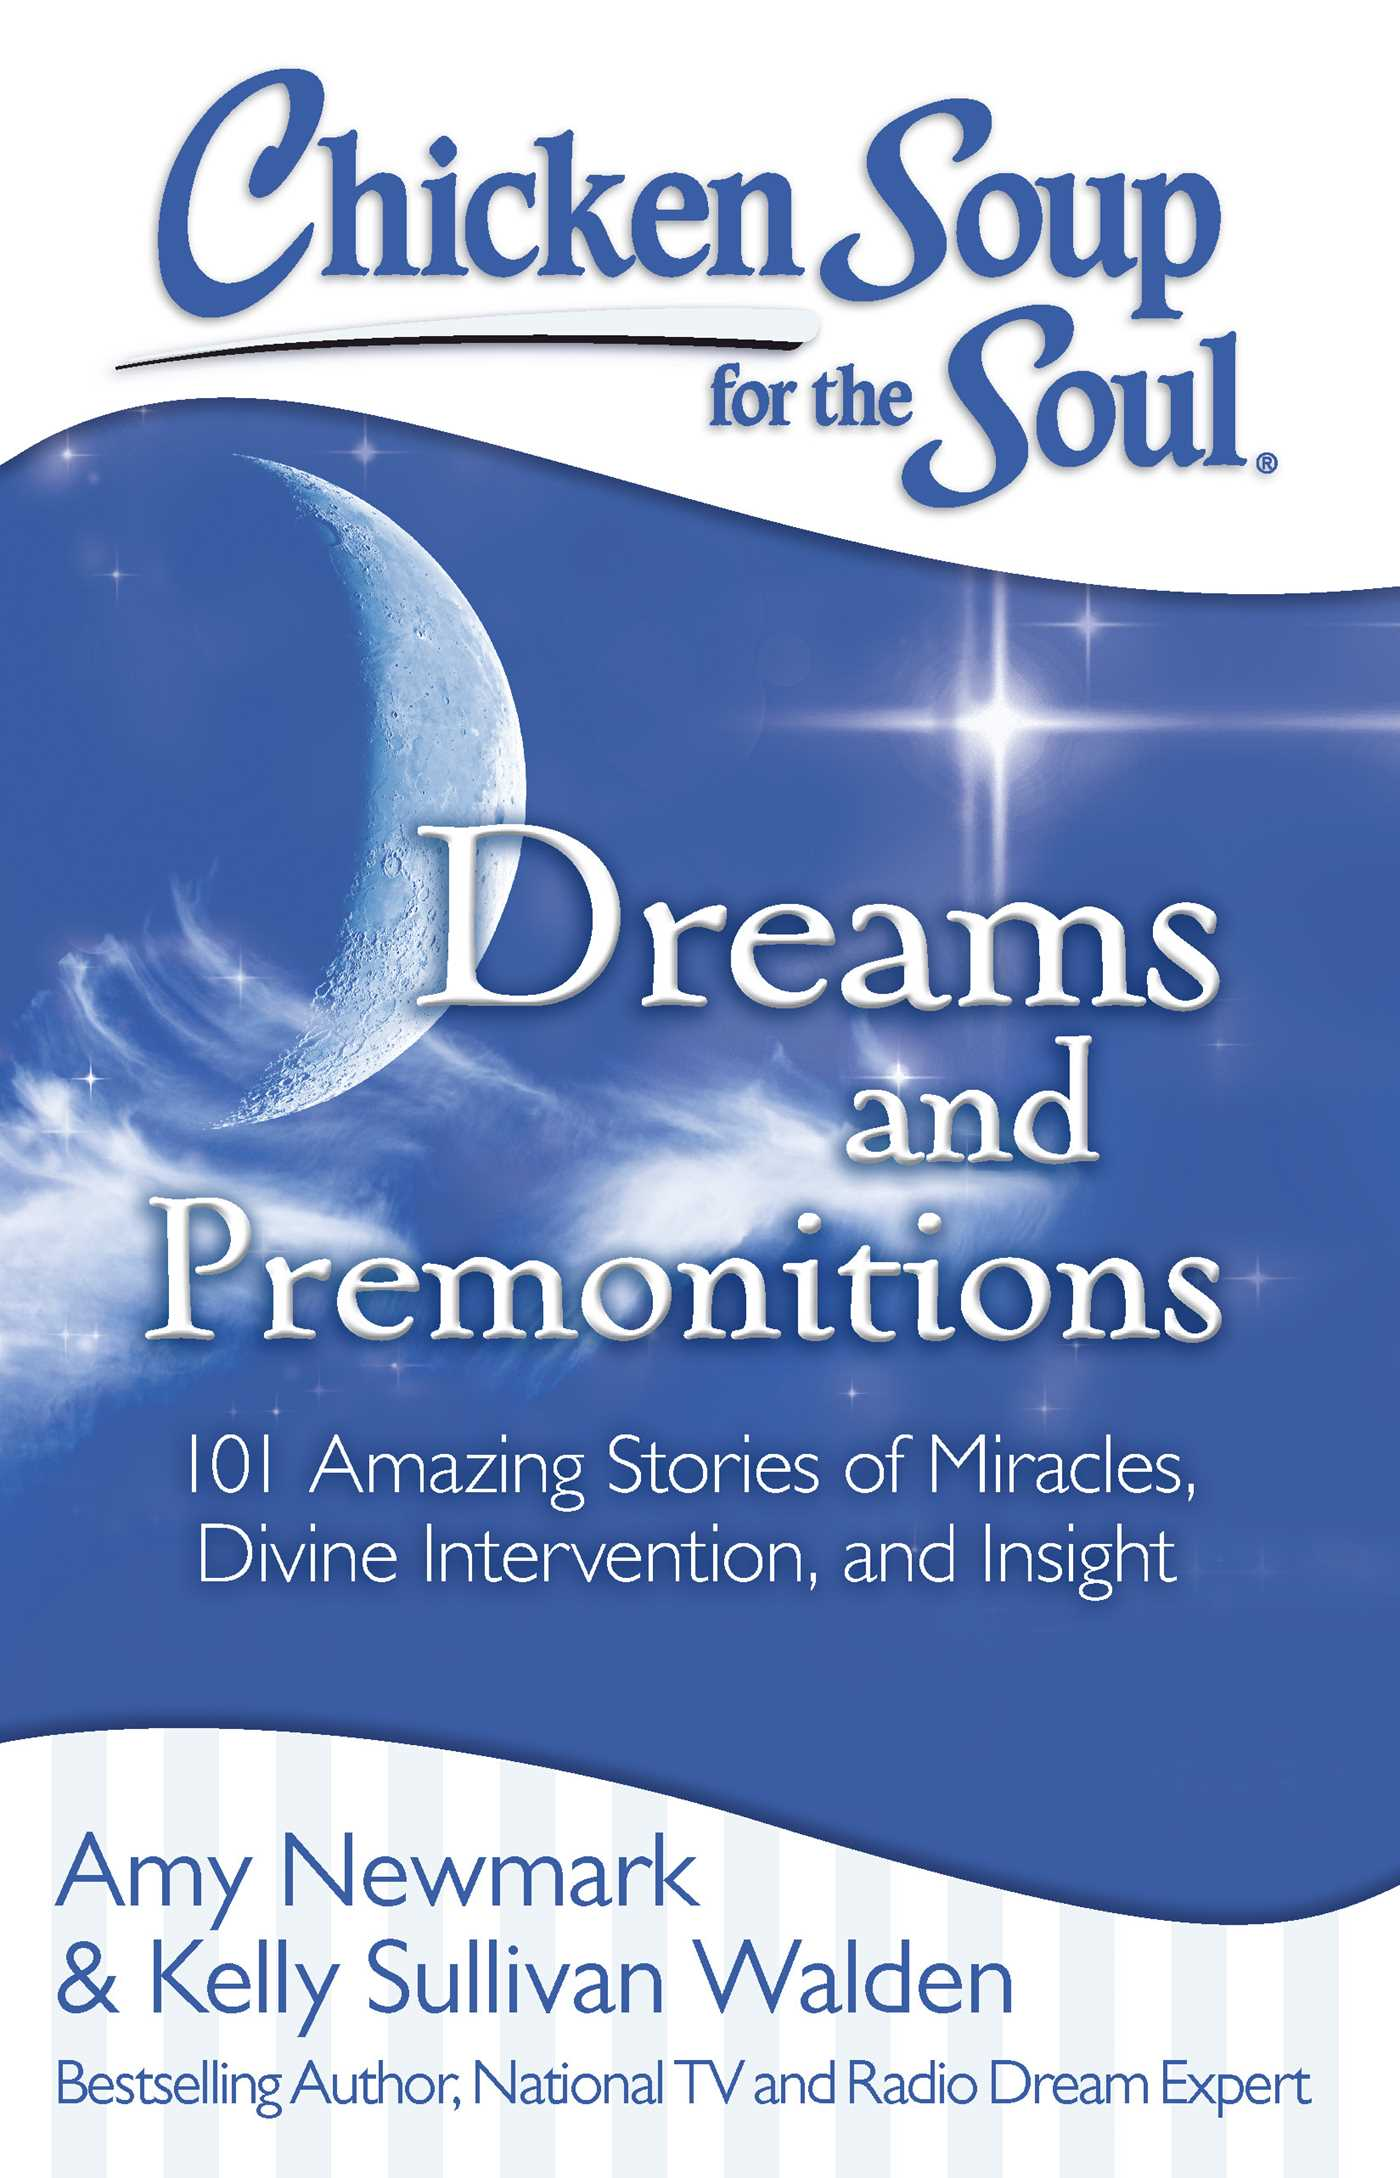 101 Amazing Stories Of Miracles, Divine Intervention, And Insight